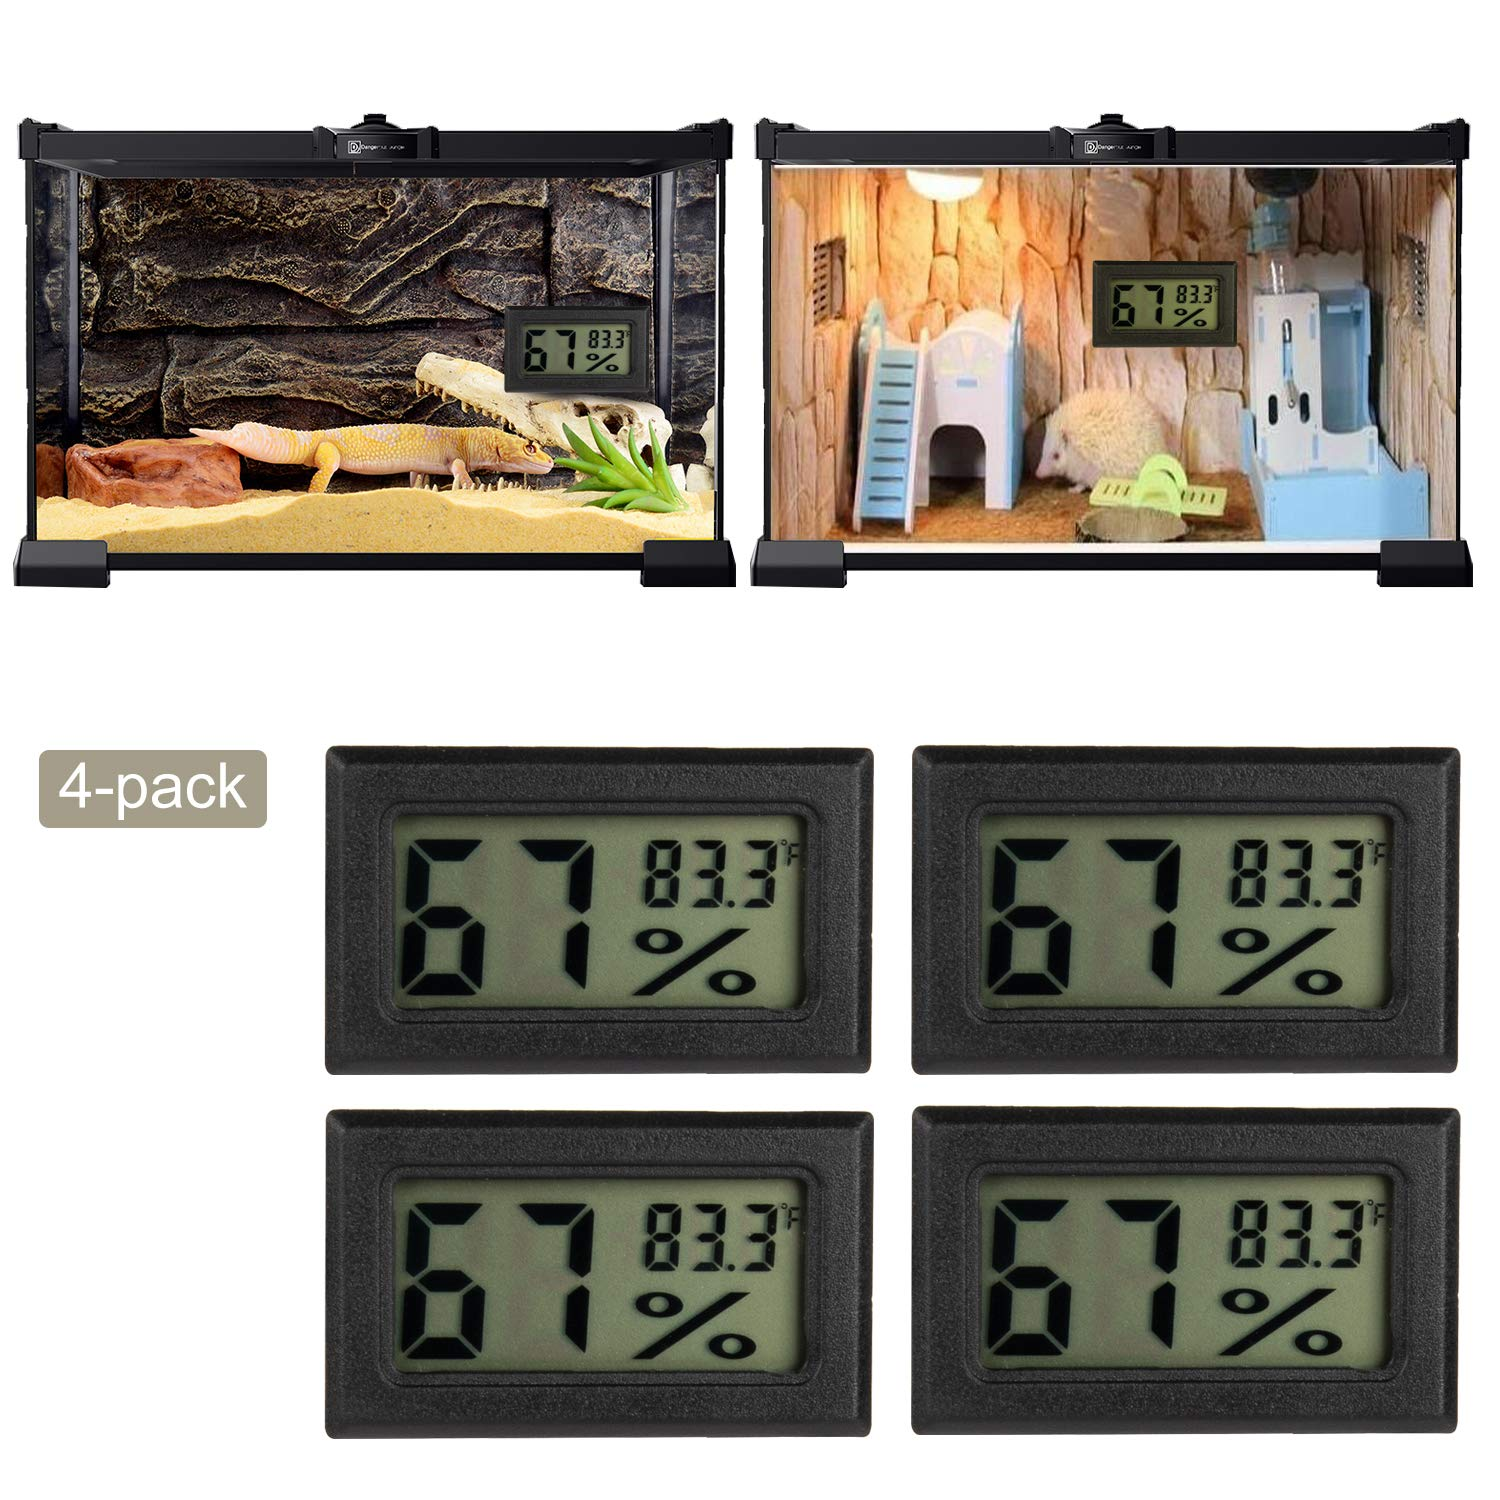 inRobert Indoor Spasm price Thermometer Digital OFFicial Electronic Hygrometer Mini T